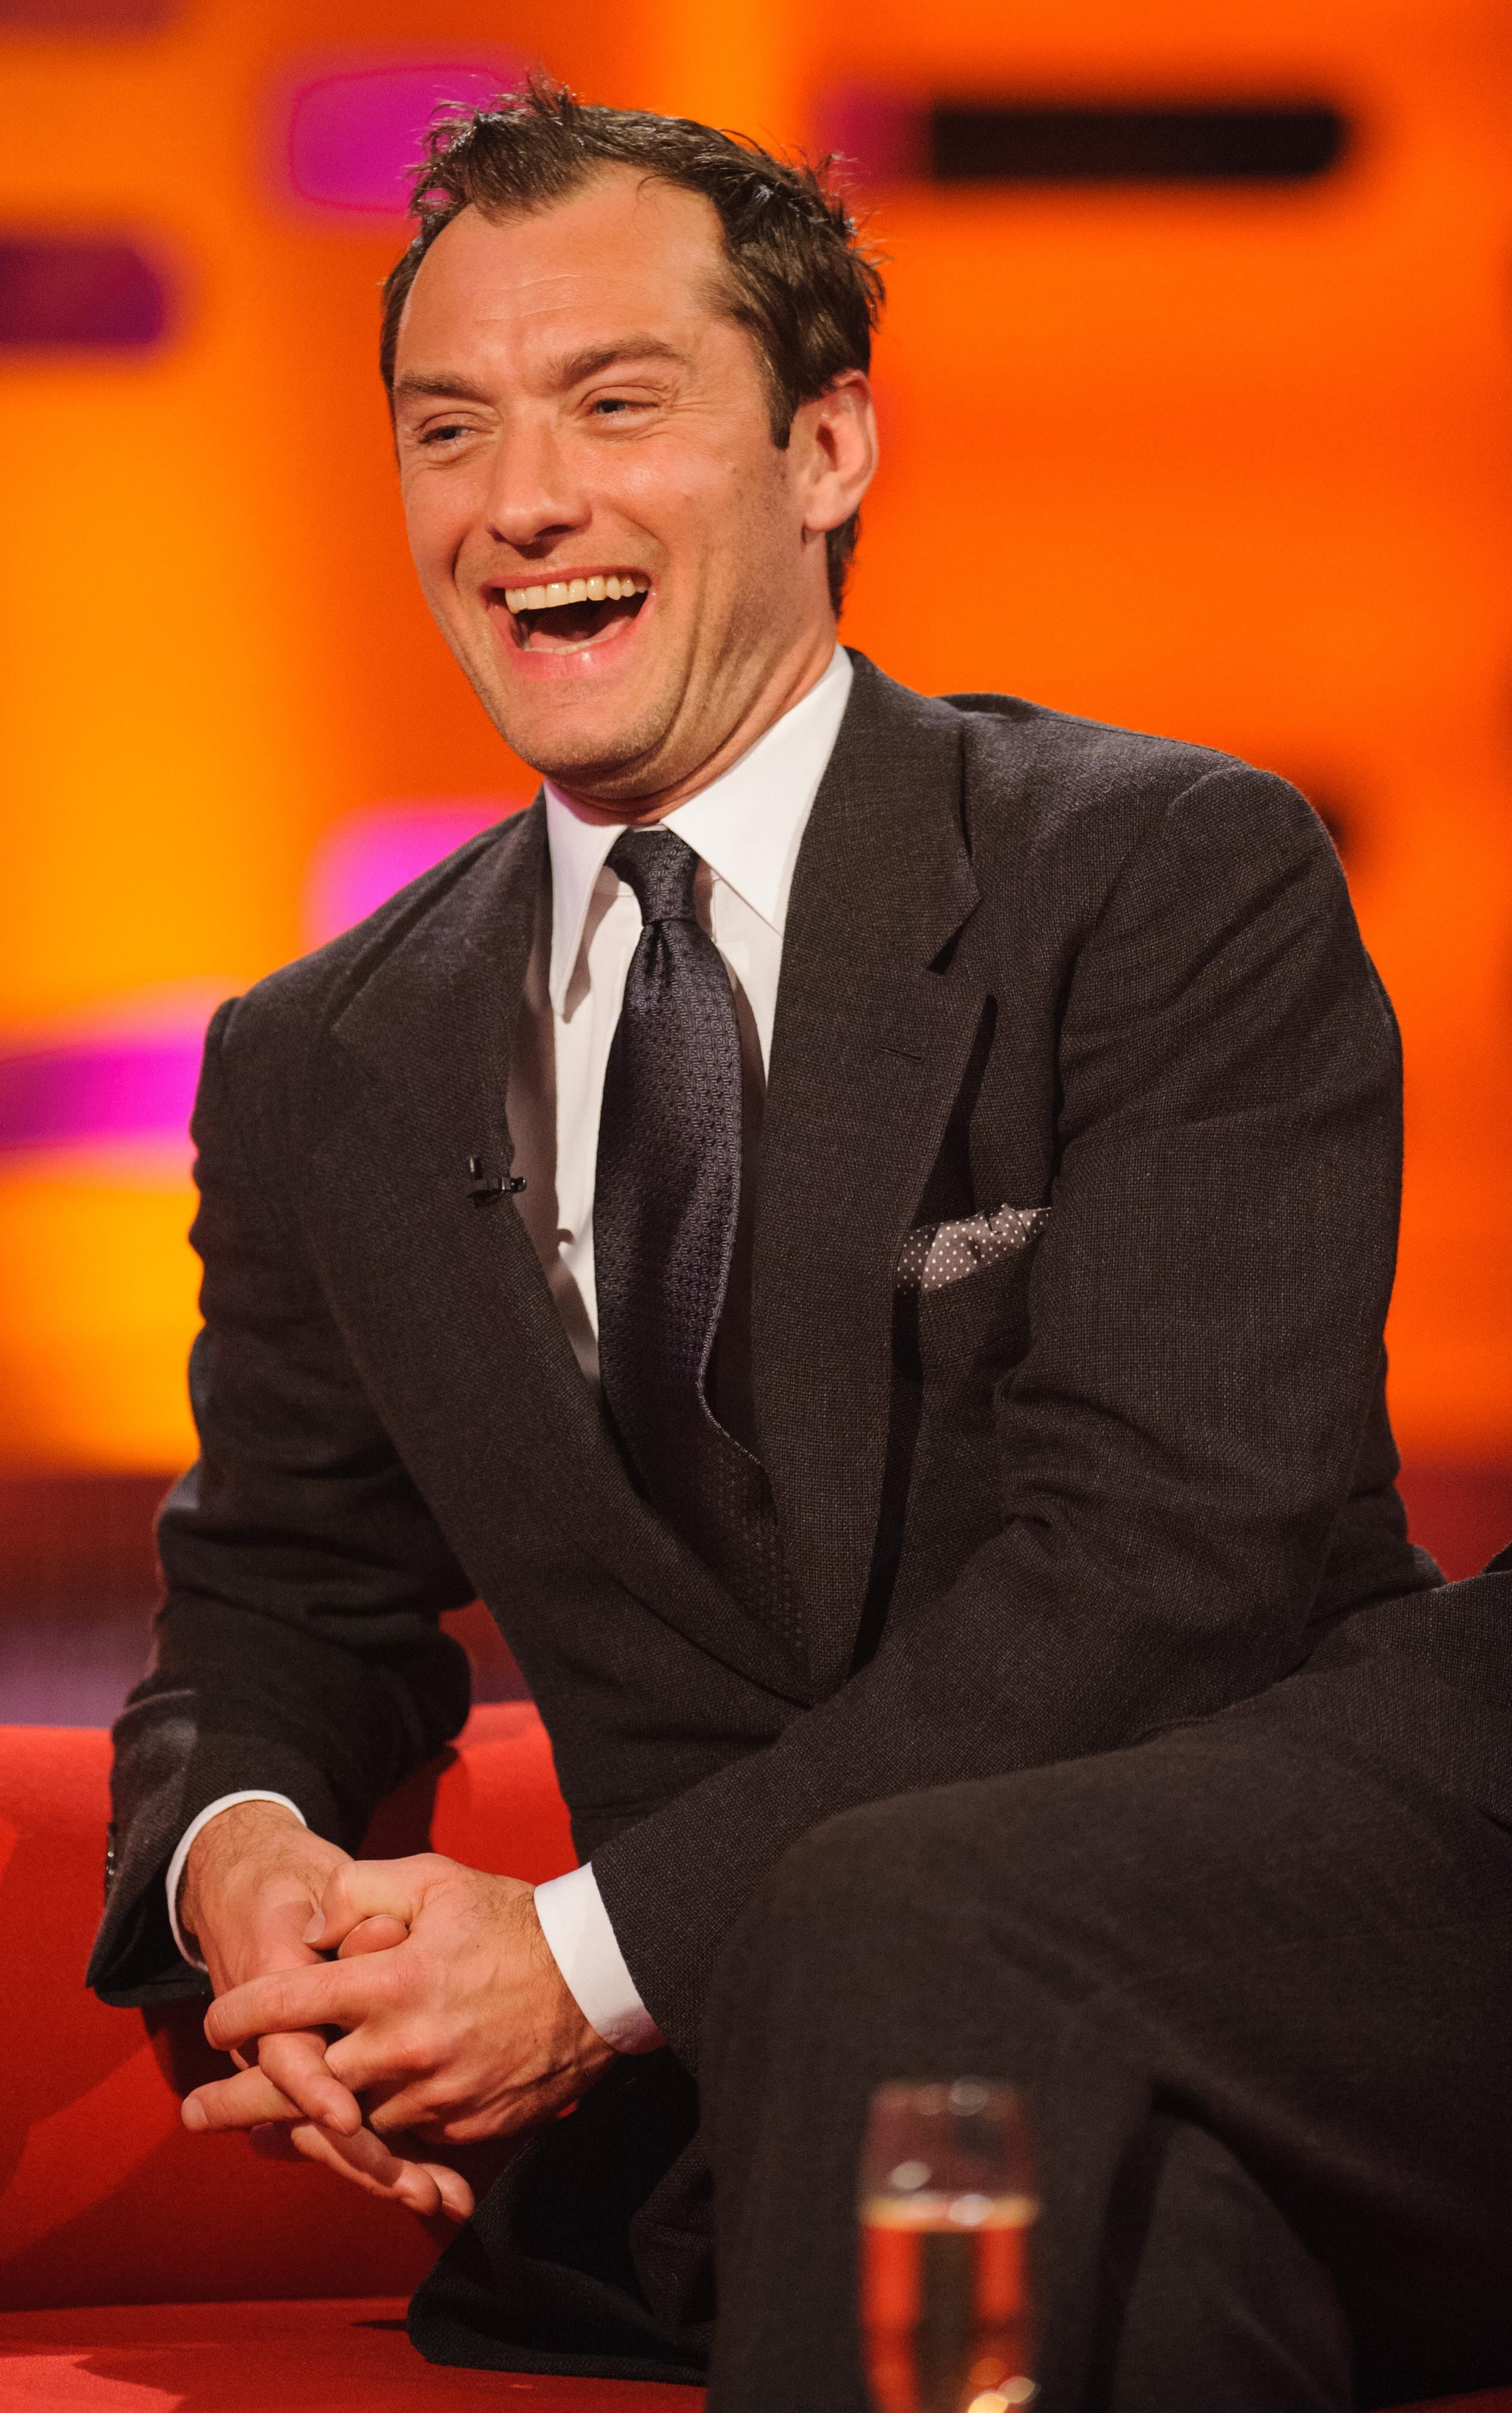 Graham Norton Show - London